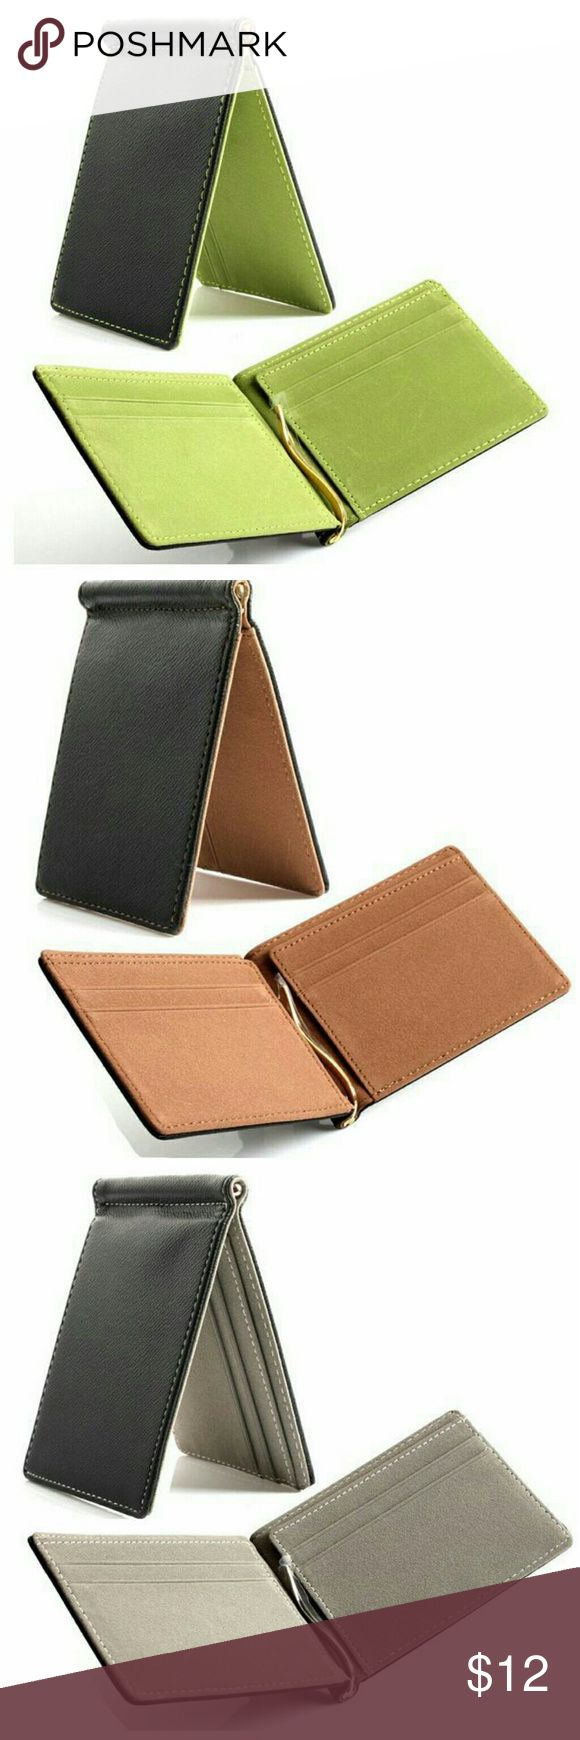 """Mony Clip Slim Wallet Features: Fashion, portable  Bullet Points: Mini size, Money clip  Condition: Brand new, casual style, portable  Material: PU  Style: Card Holder, Cash Holder  Size: 4.5"""" x 3""""     Package included: 1 x Card Holder Wallet none Bags Wallets"""